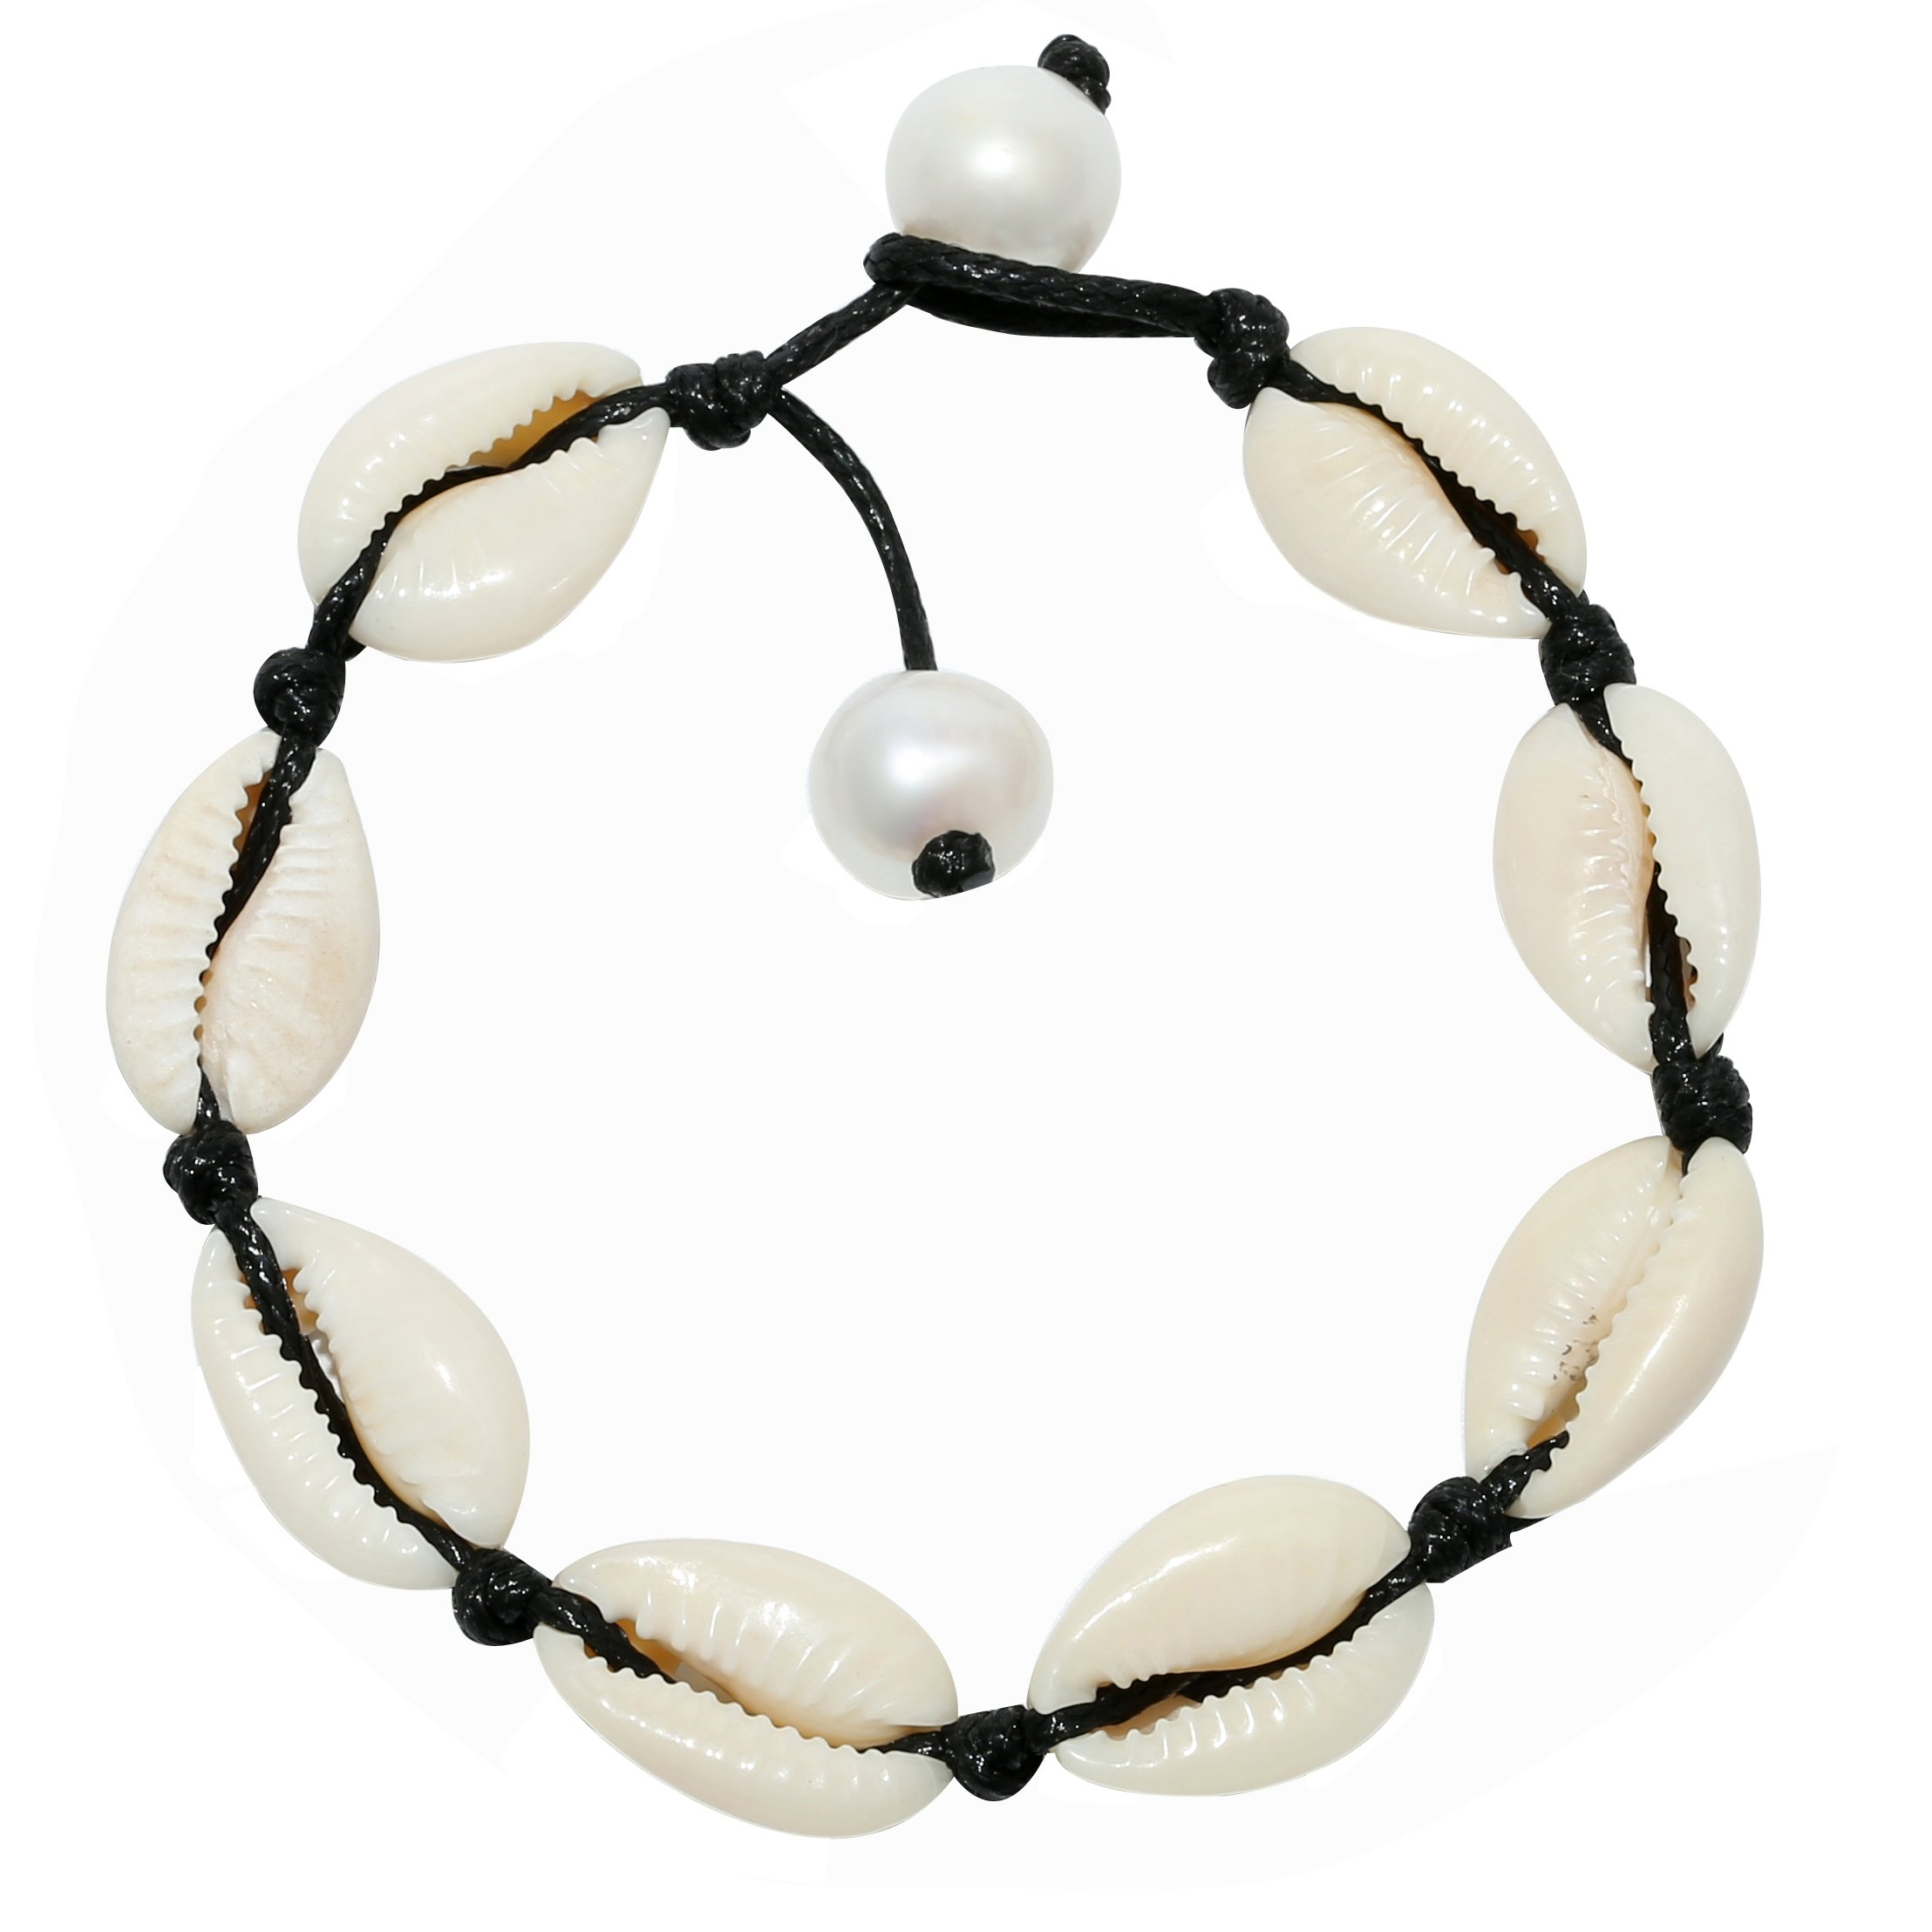 POTESSA Tropical Shell Beads Anklets Handmade Black Wax Cord Ankle Beach Foot Jewelry Adjustable